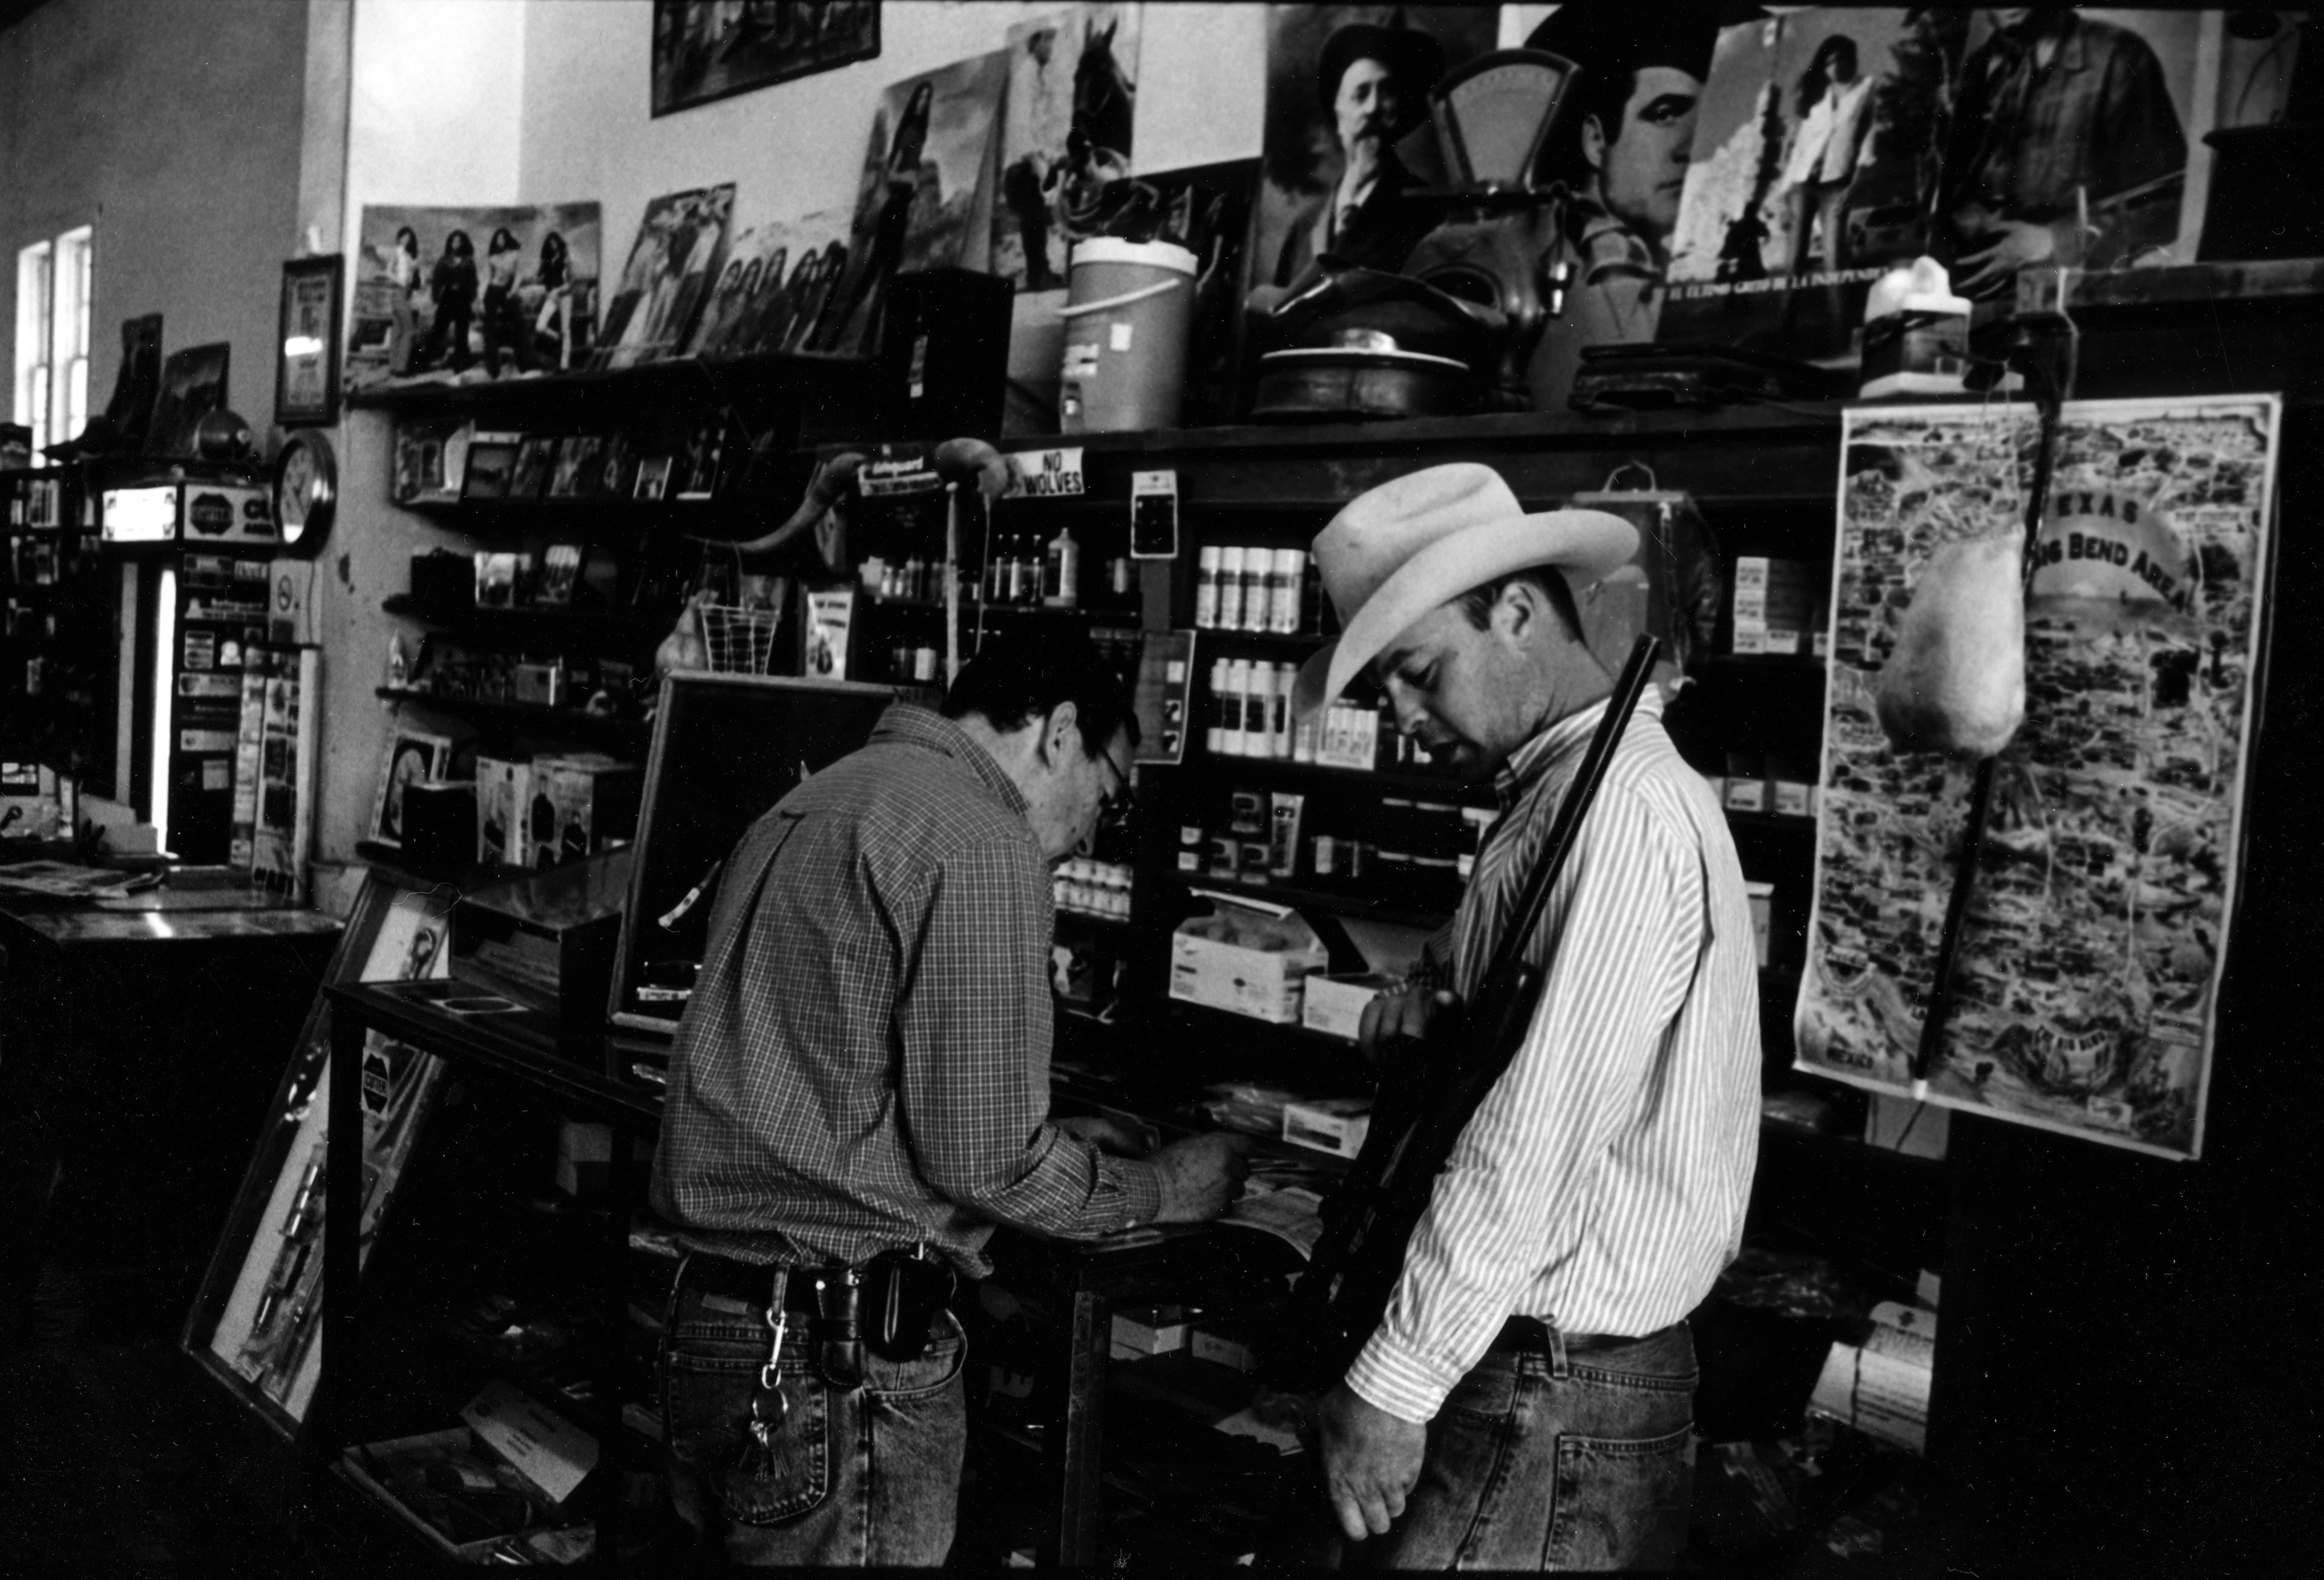 A young man in a cowboy hat holds a rifle while a sales person helps him in a store